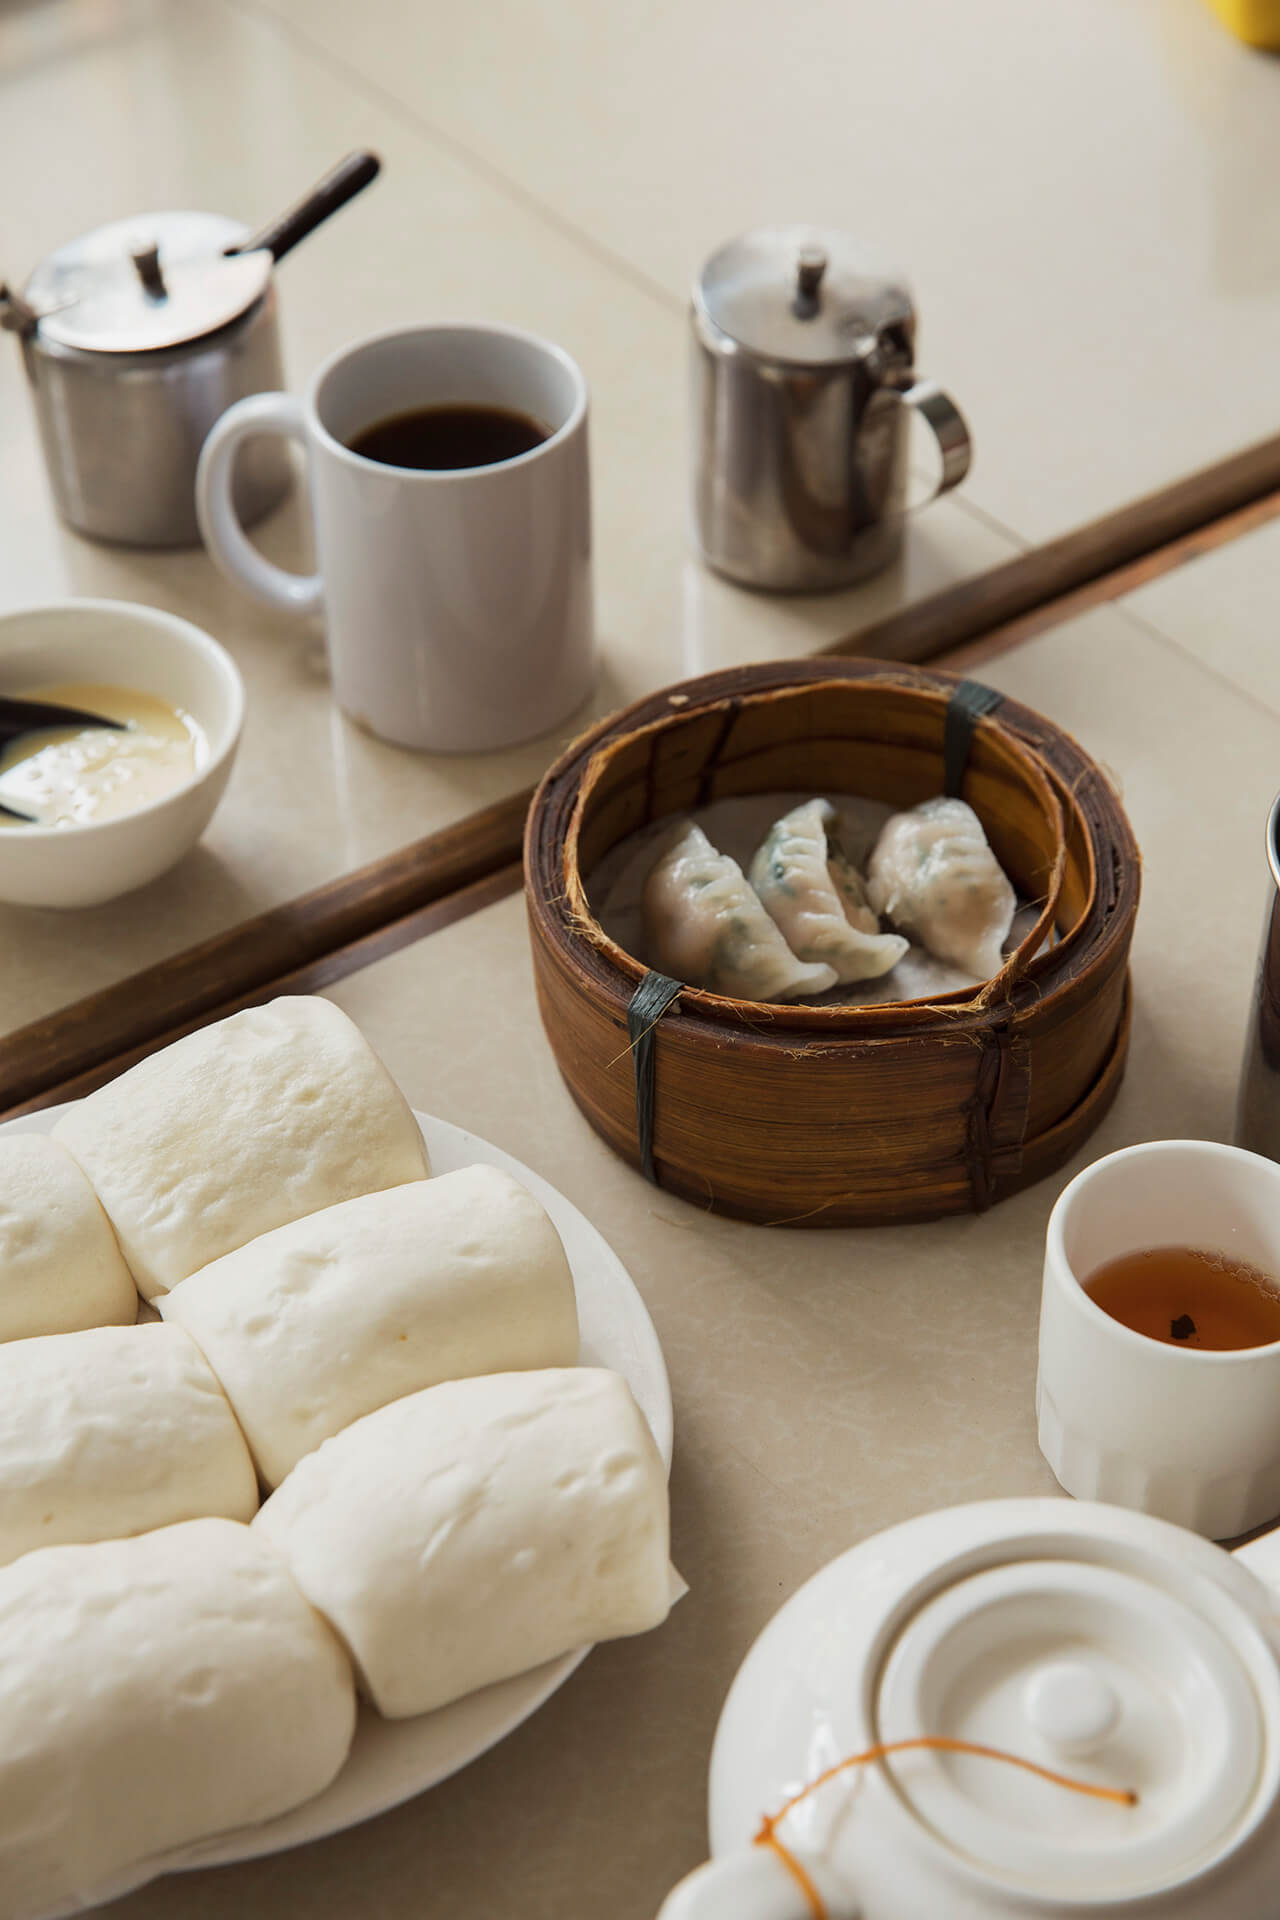 Cuapao buns and dumplings with hot tea at Ying-Ying Tea House.